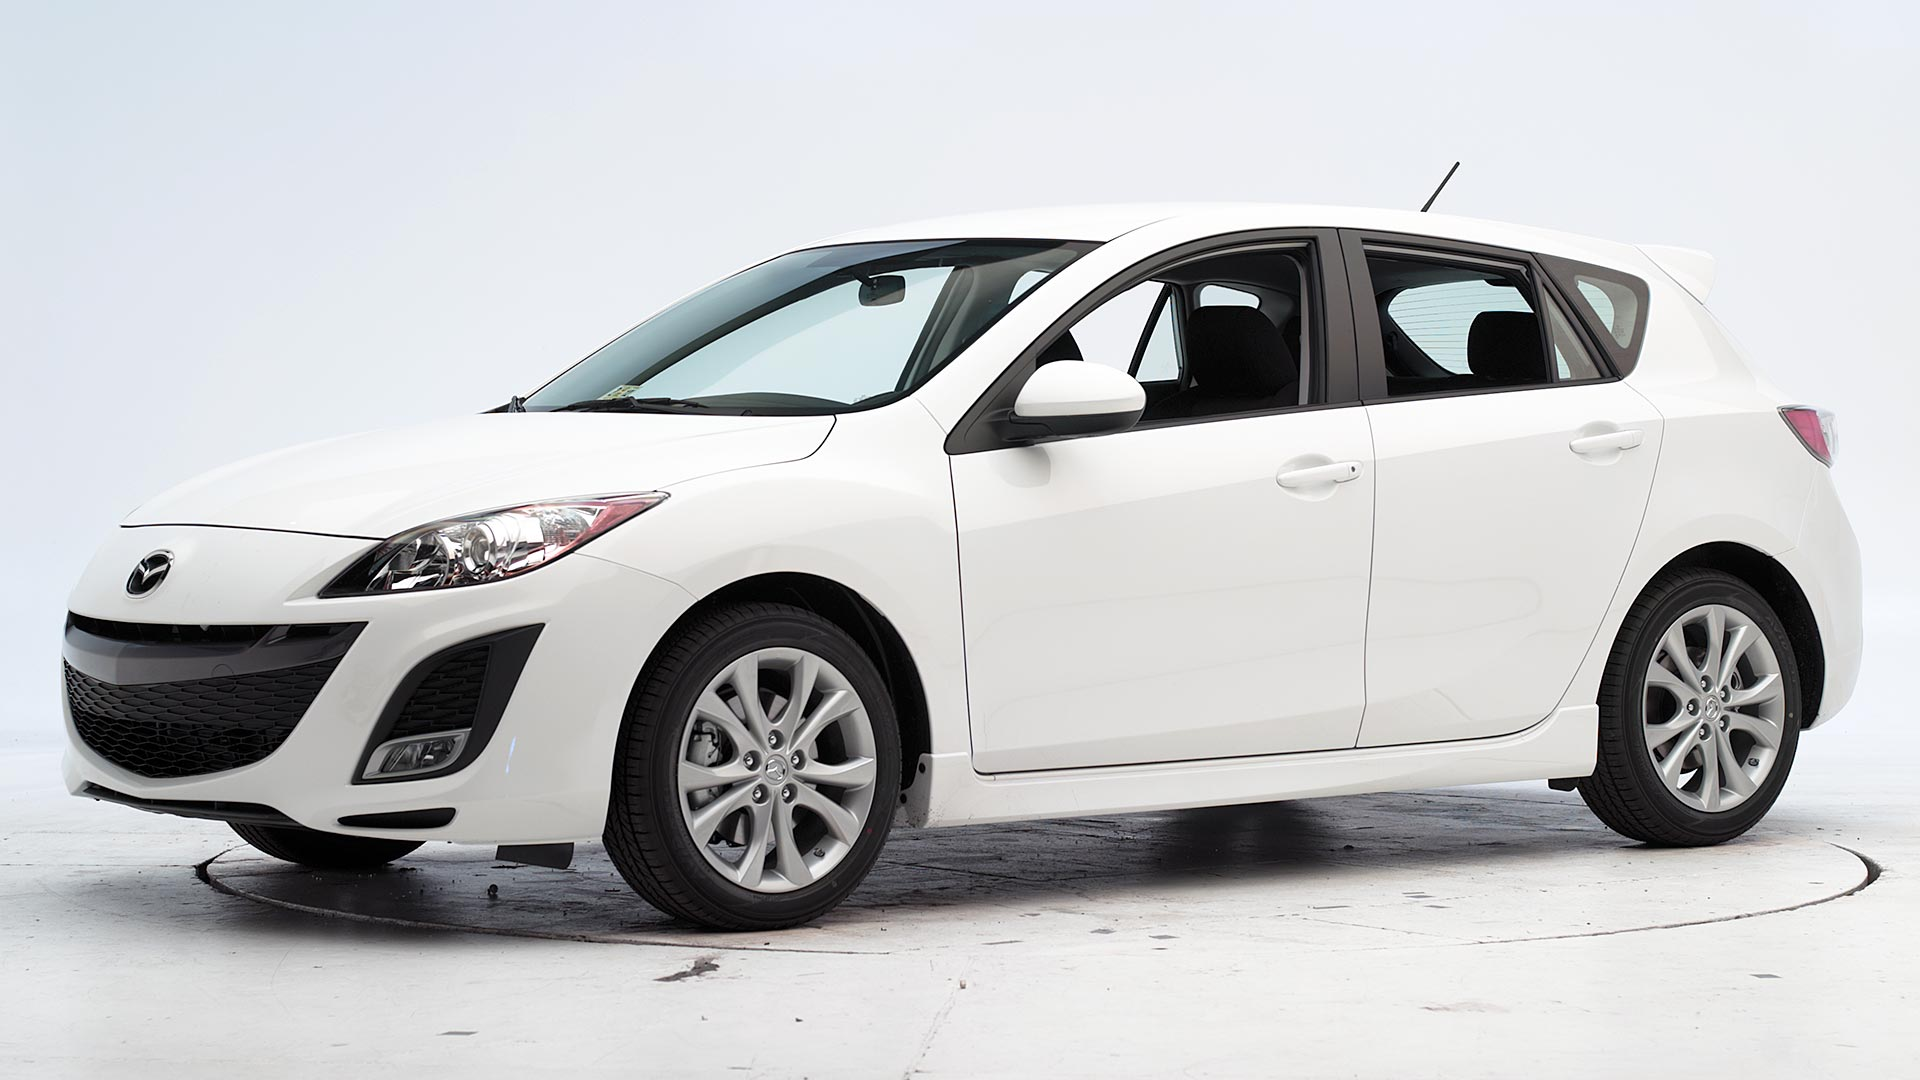 2011 Mazda 3 4-door hatchback